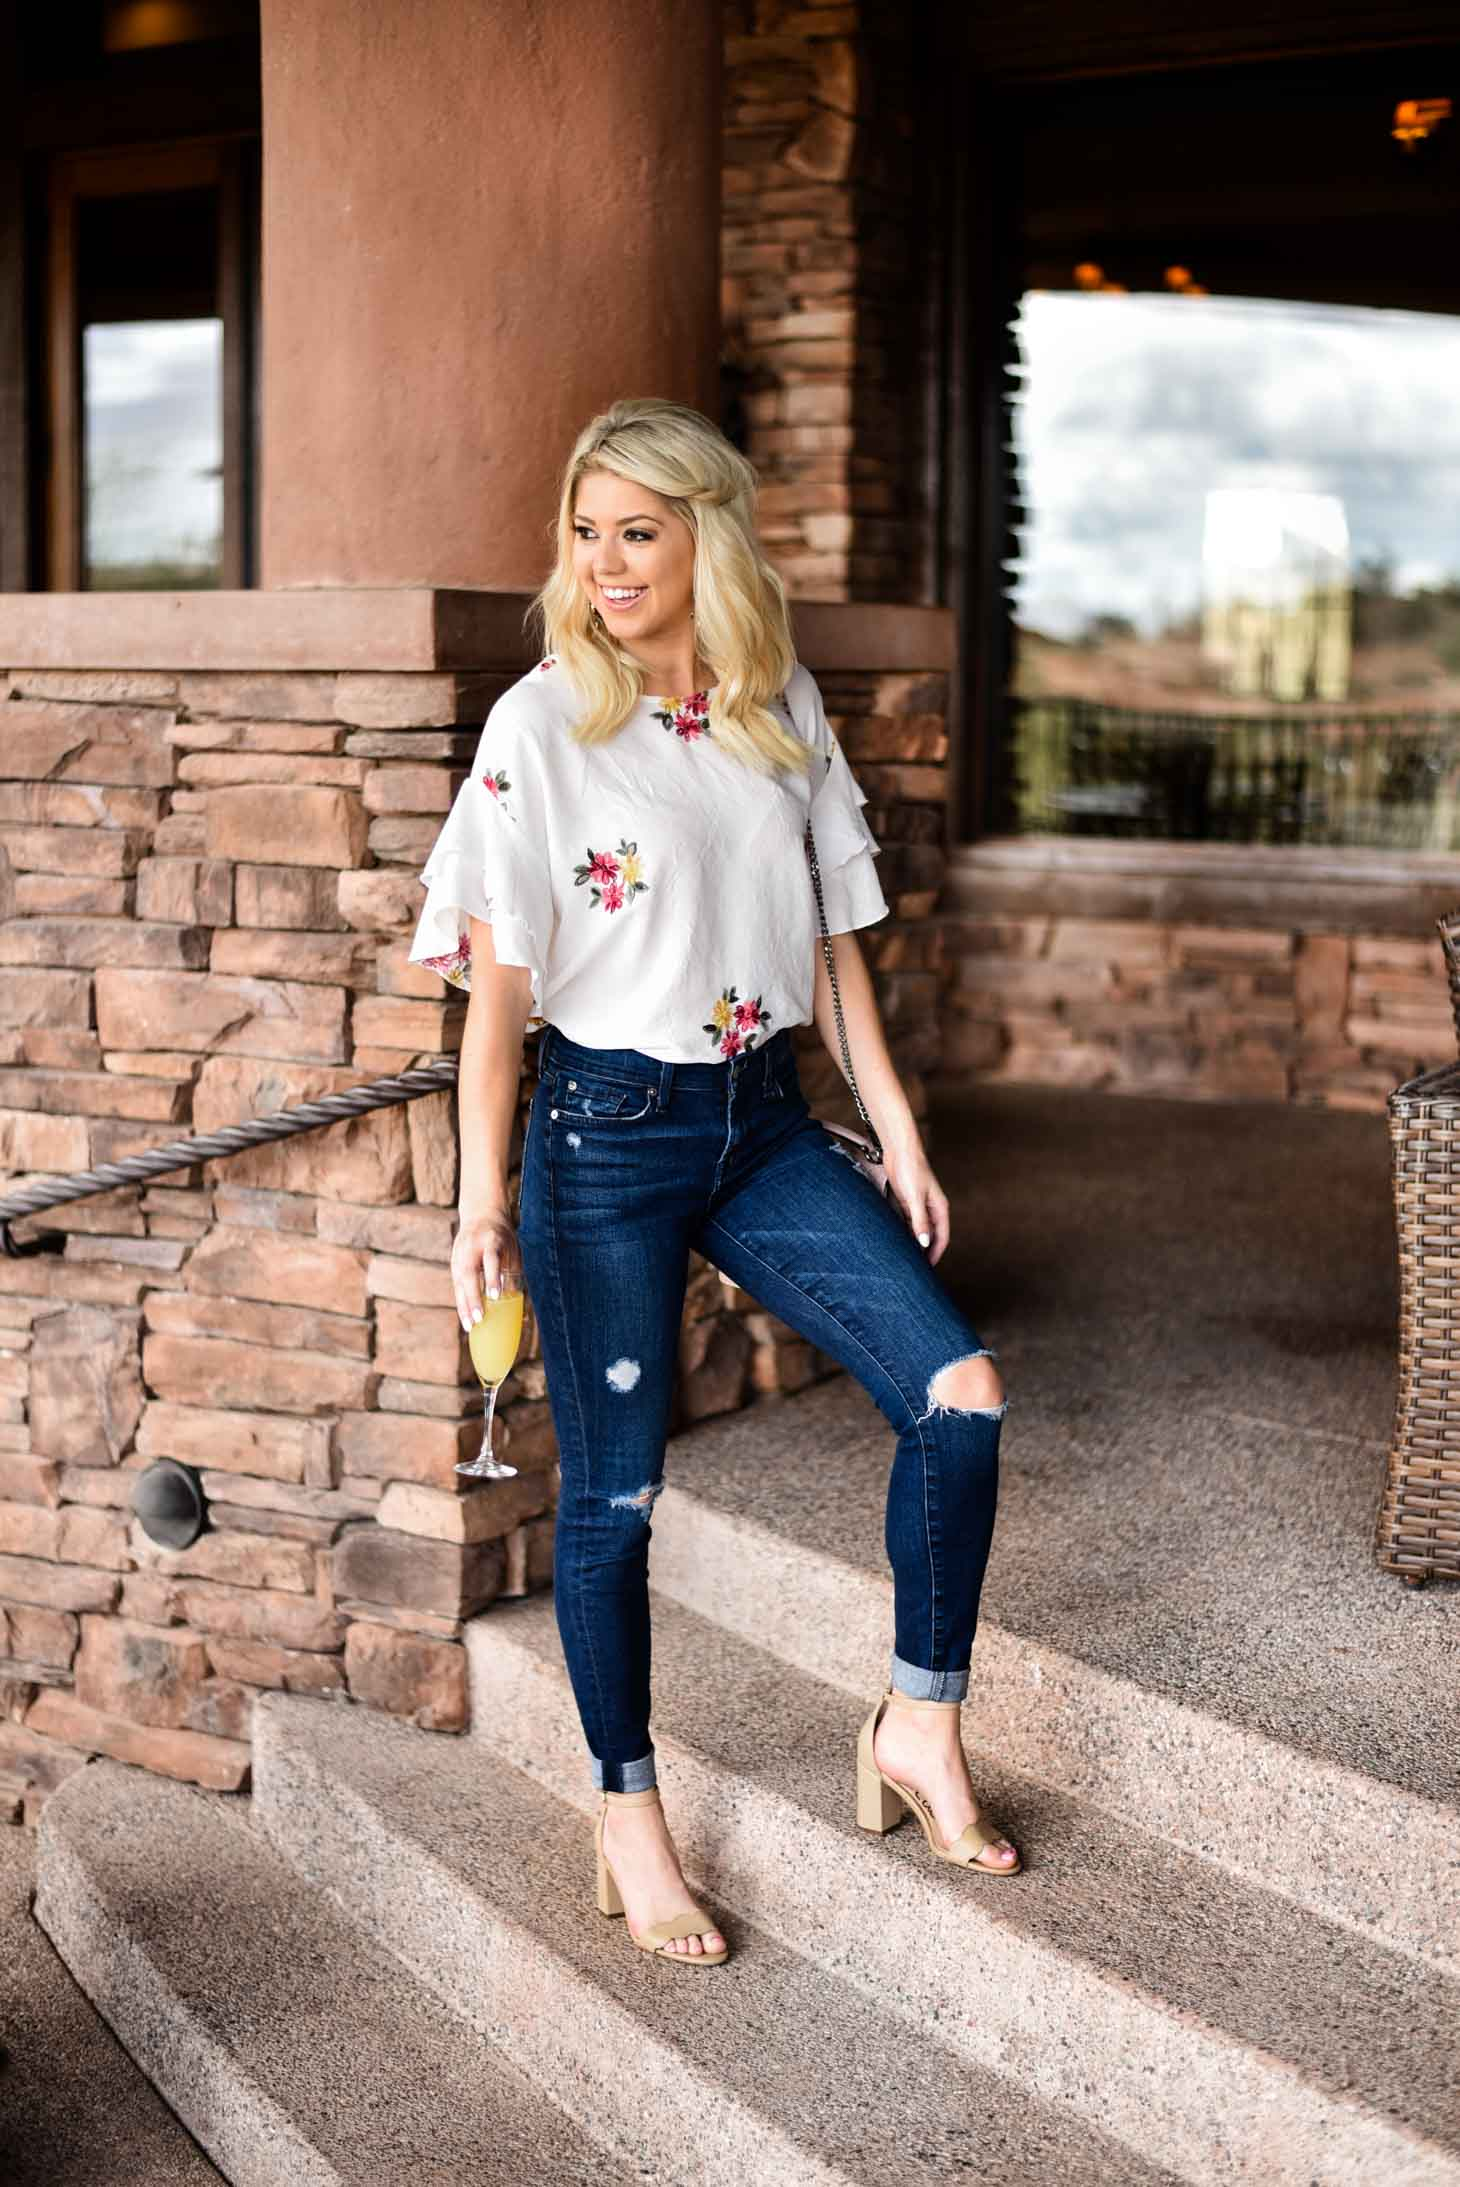 Erin Elizabeth of Wink and a Twirl in Forever 21 Spring Floral Top and Denim